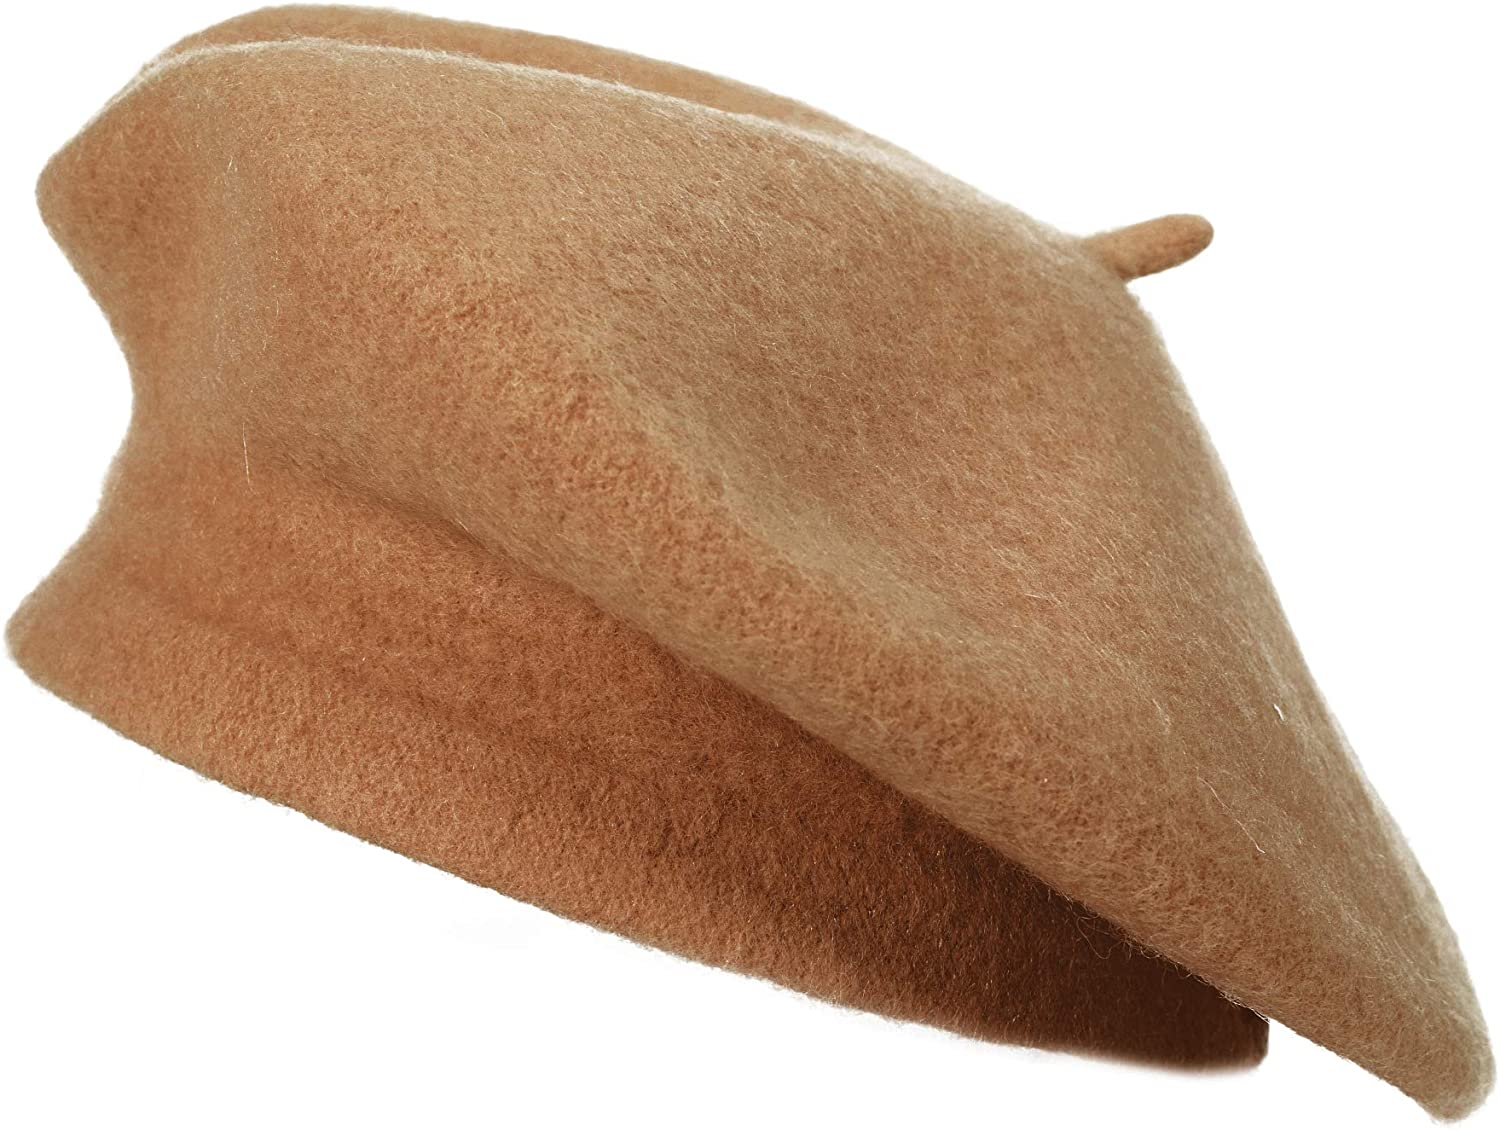 ZLYC Wool French Beret Hat Solid Color Beret Cap for Women Girls